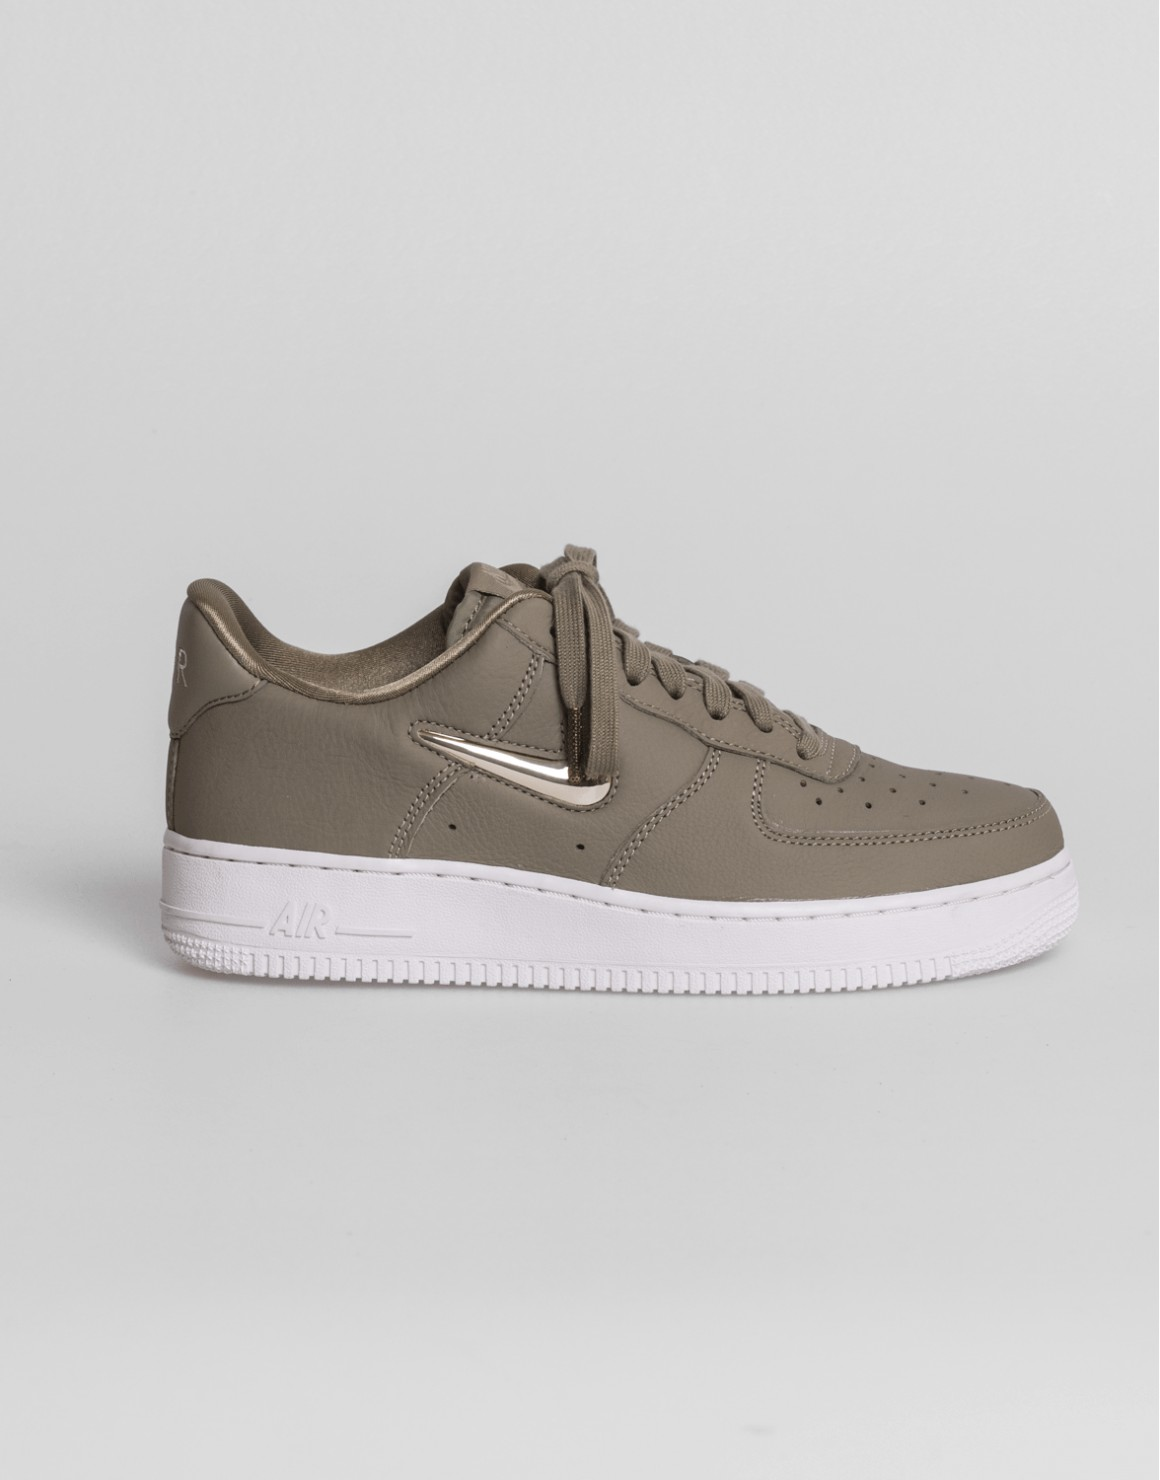 AIR FORCE 1 07 PRM LX